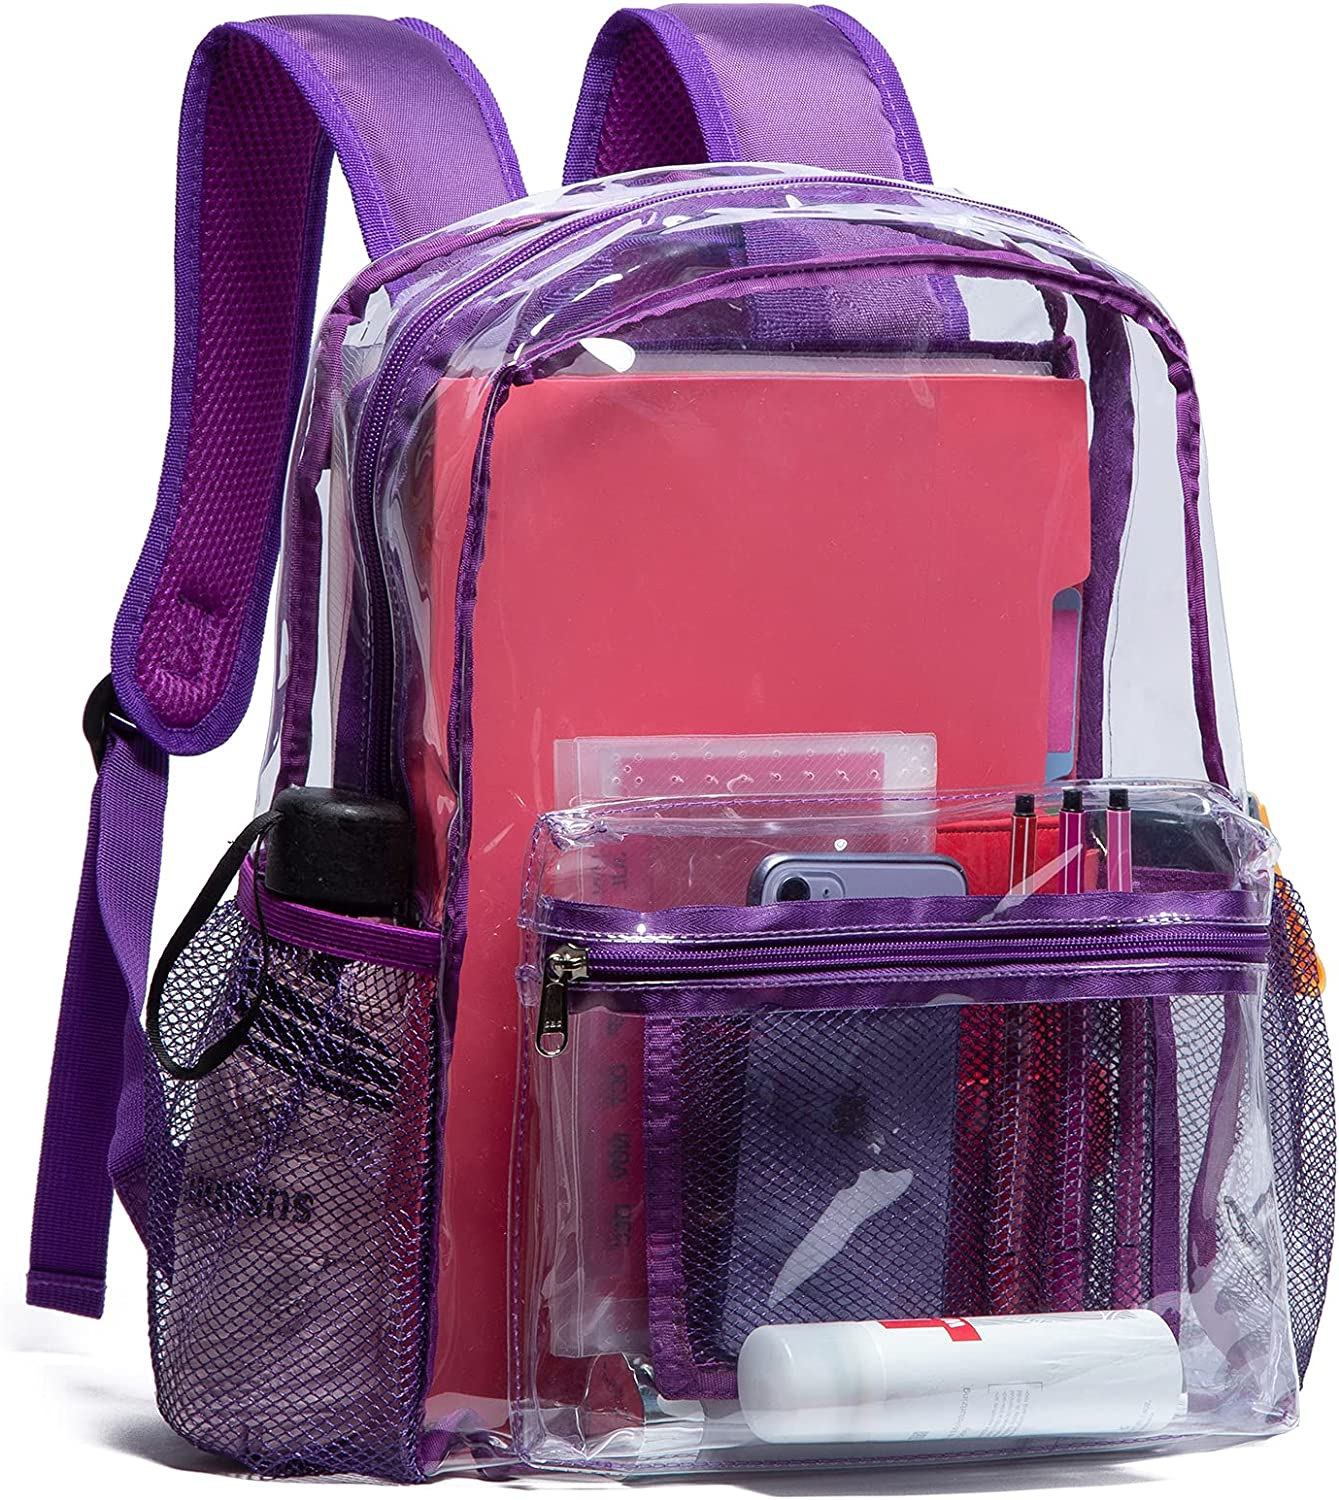 Vorspack Clear Backpack Heavy with Fashion Max 80% OFF Duty Transparent PVC